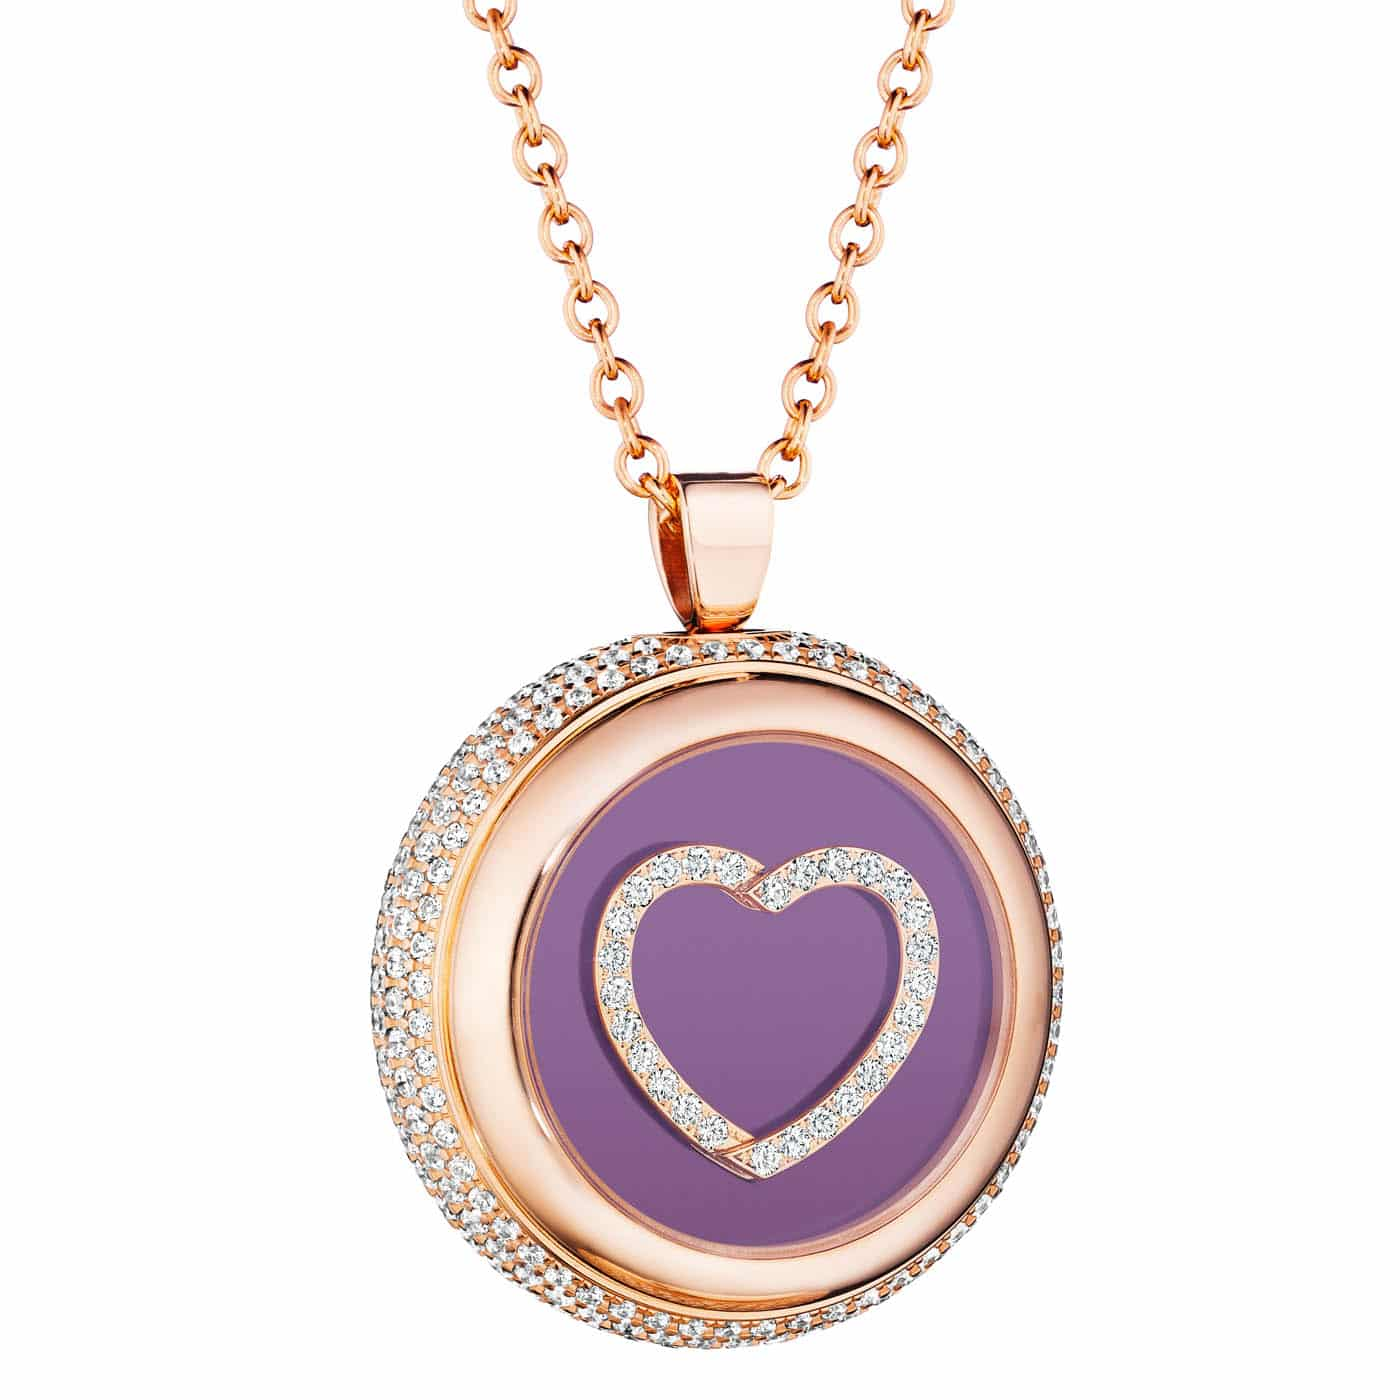 PAUL FORREST CO ROSE GOLD AMETHYST MEDALLION-SHAPED PENDANT WITH DIAMONDS